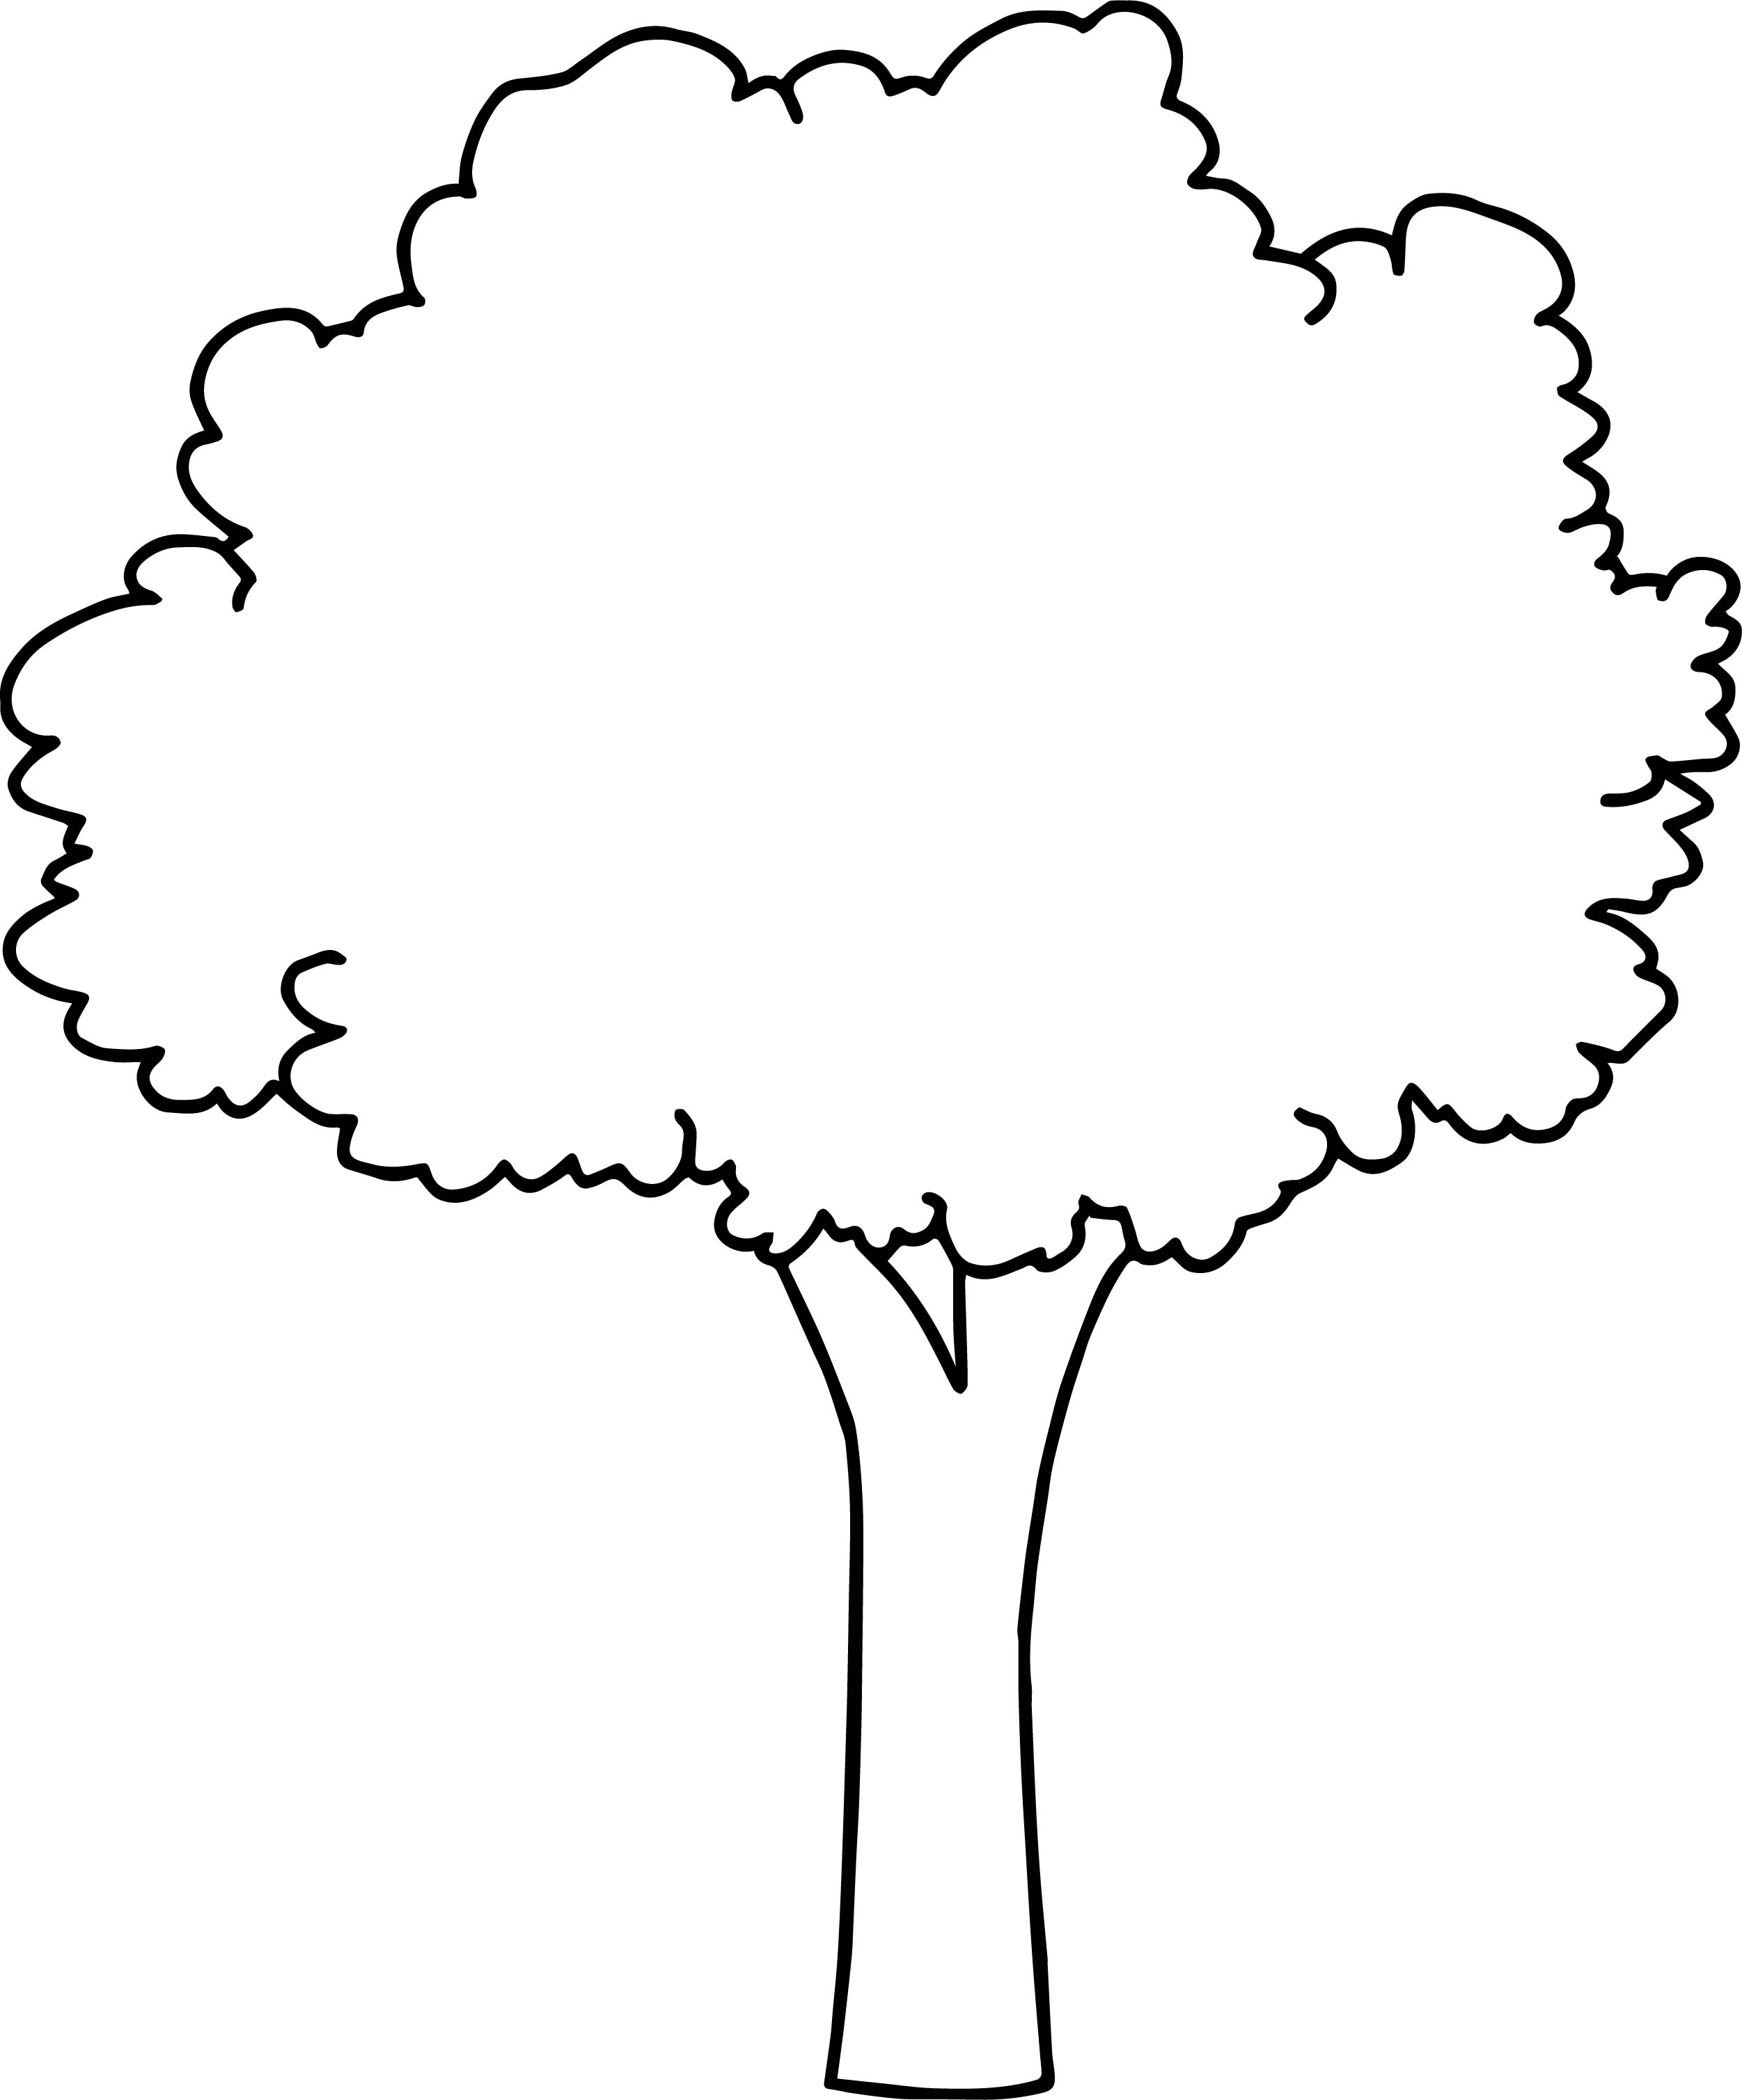 zealous apple tree coloring page - Apple Tree Coloring Page